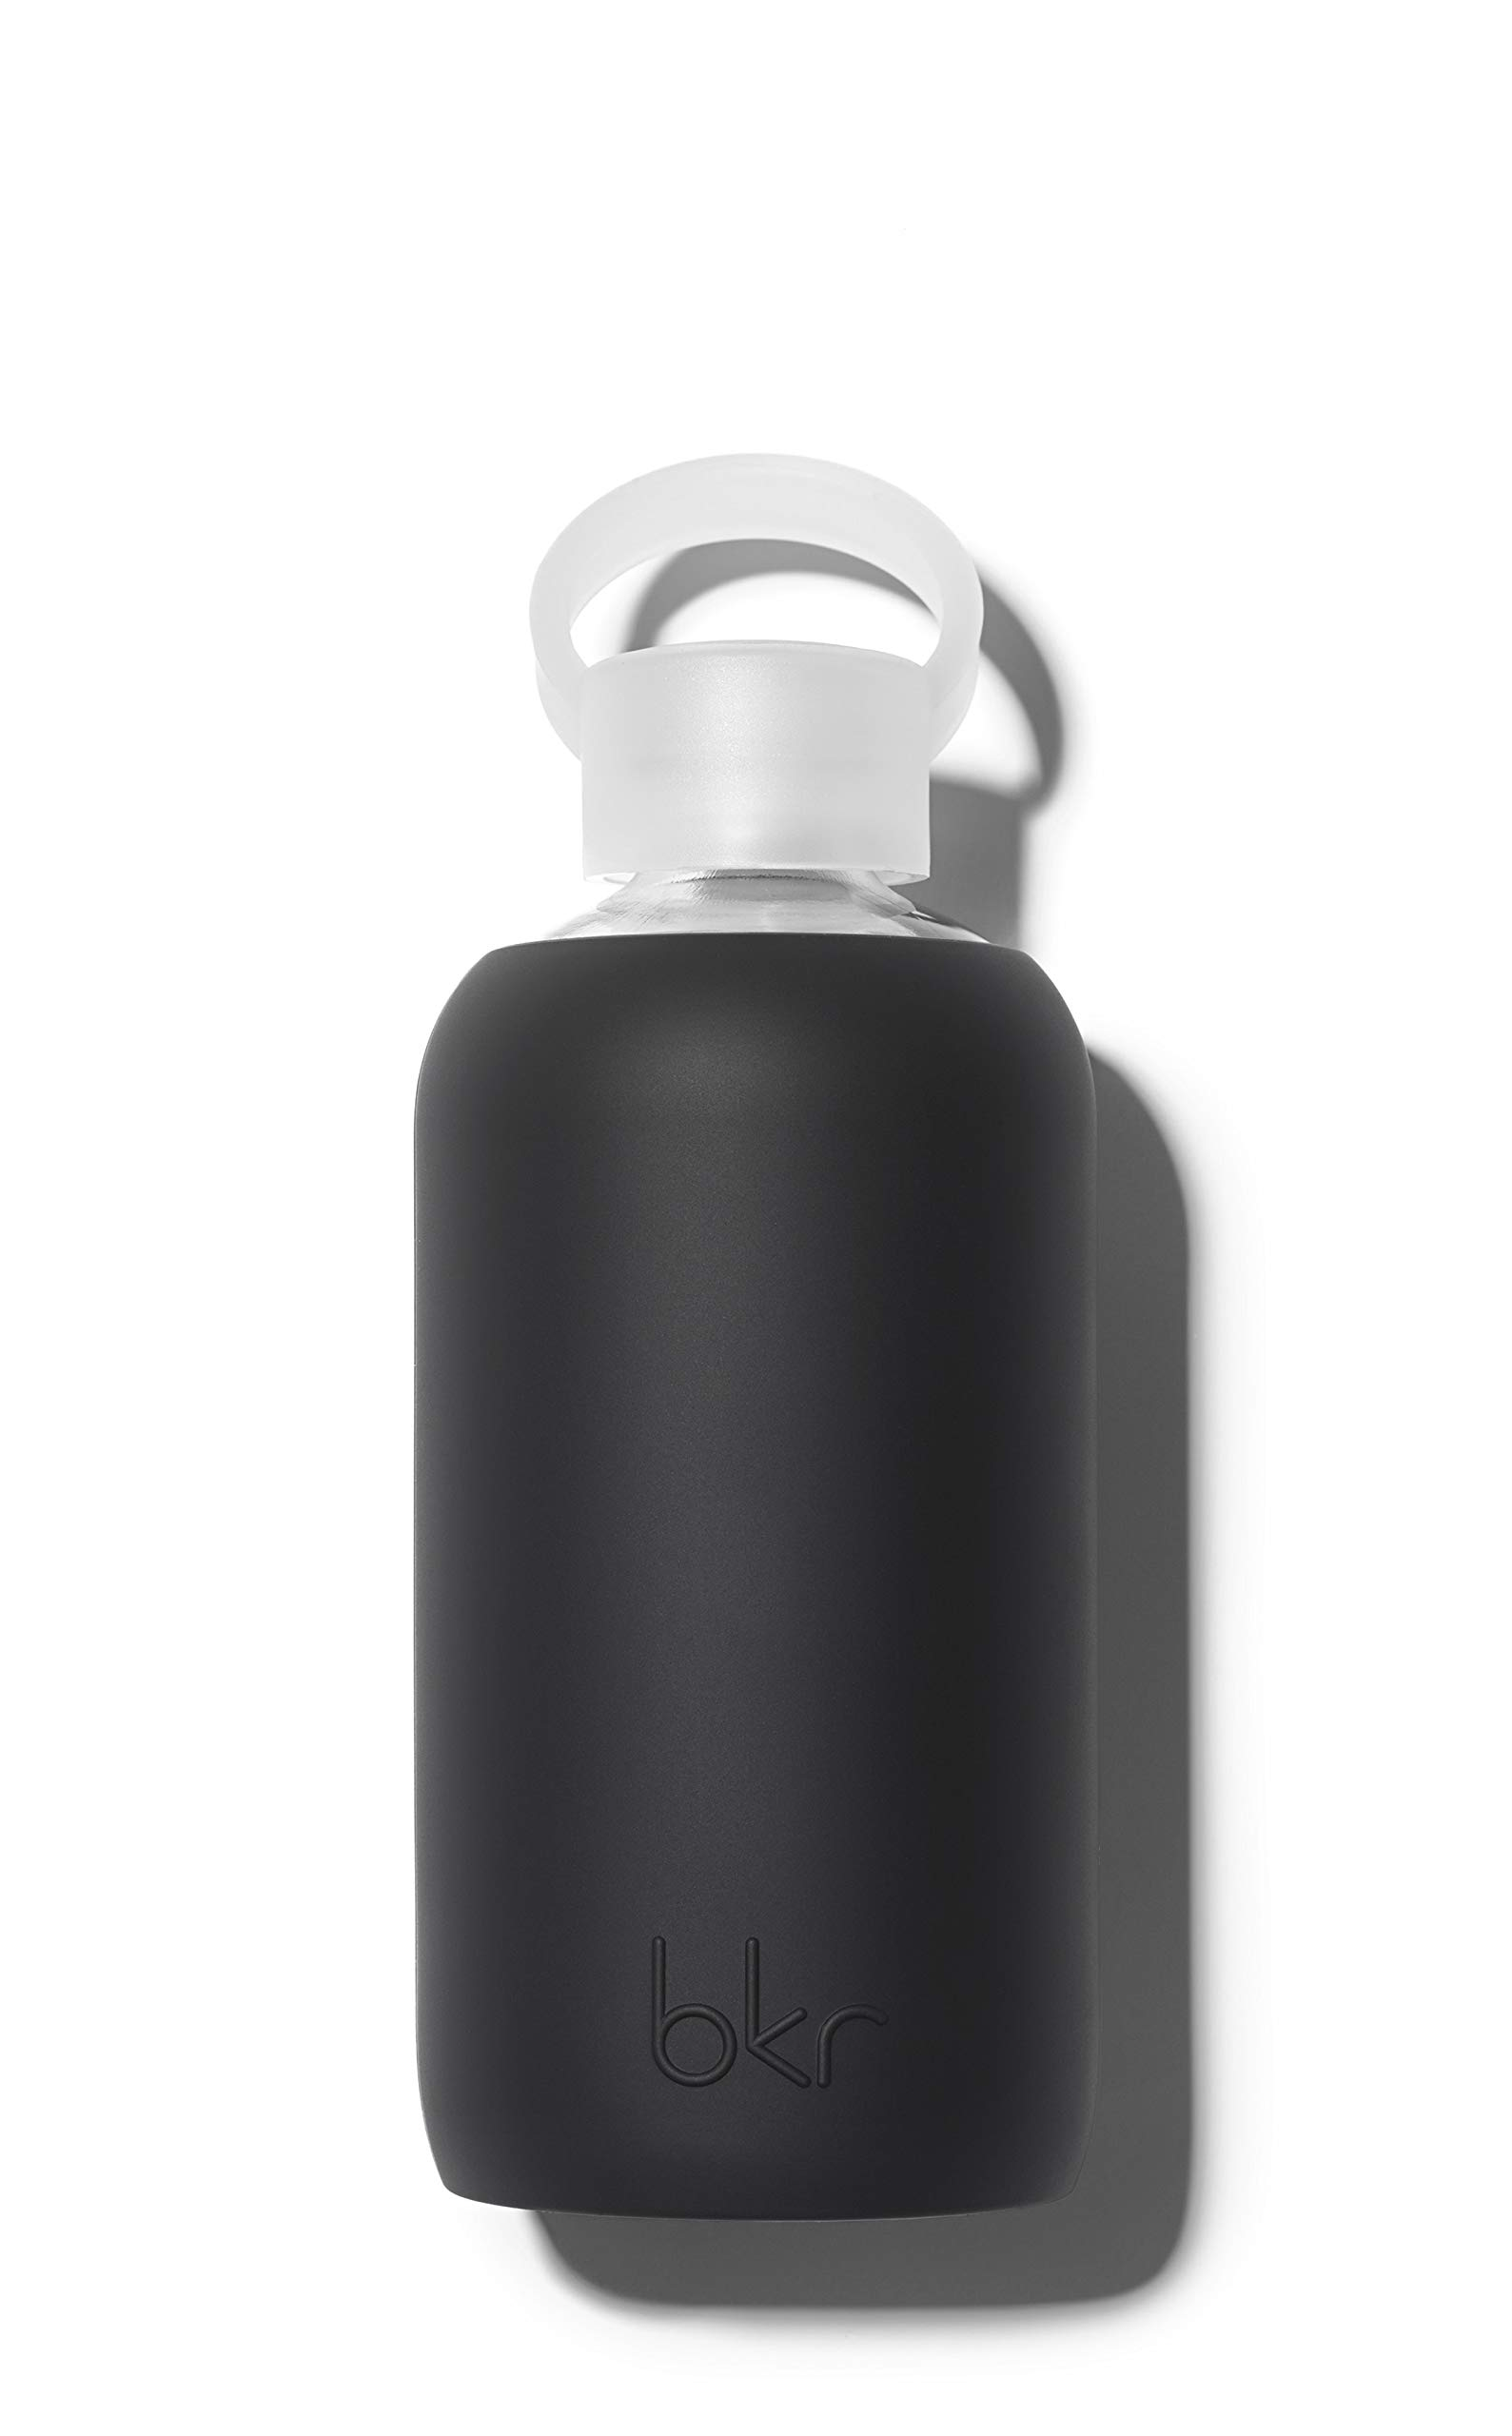 bkr Jet Glass Water Bottle with Smooth Silicone Sleeve for Travel, Narrow Mouth, BPA-Free & Dishwasher Safe, Opaque Black, 16 oz / 500 mL by bkr (Image #1)